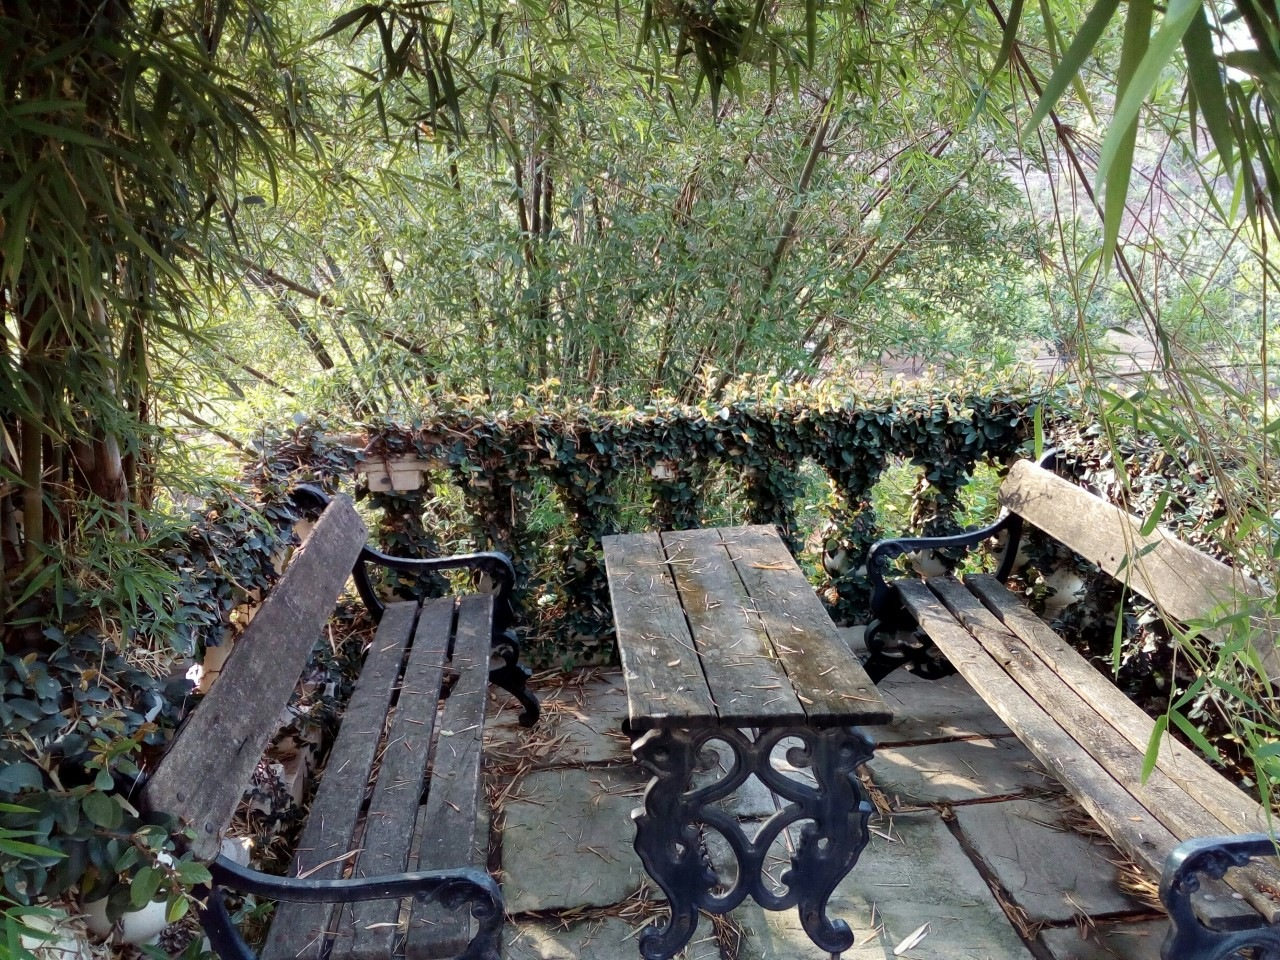 Two benches & a table in a groove of bamboo trees, lonely 7 waiting. by TariqKhan